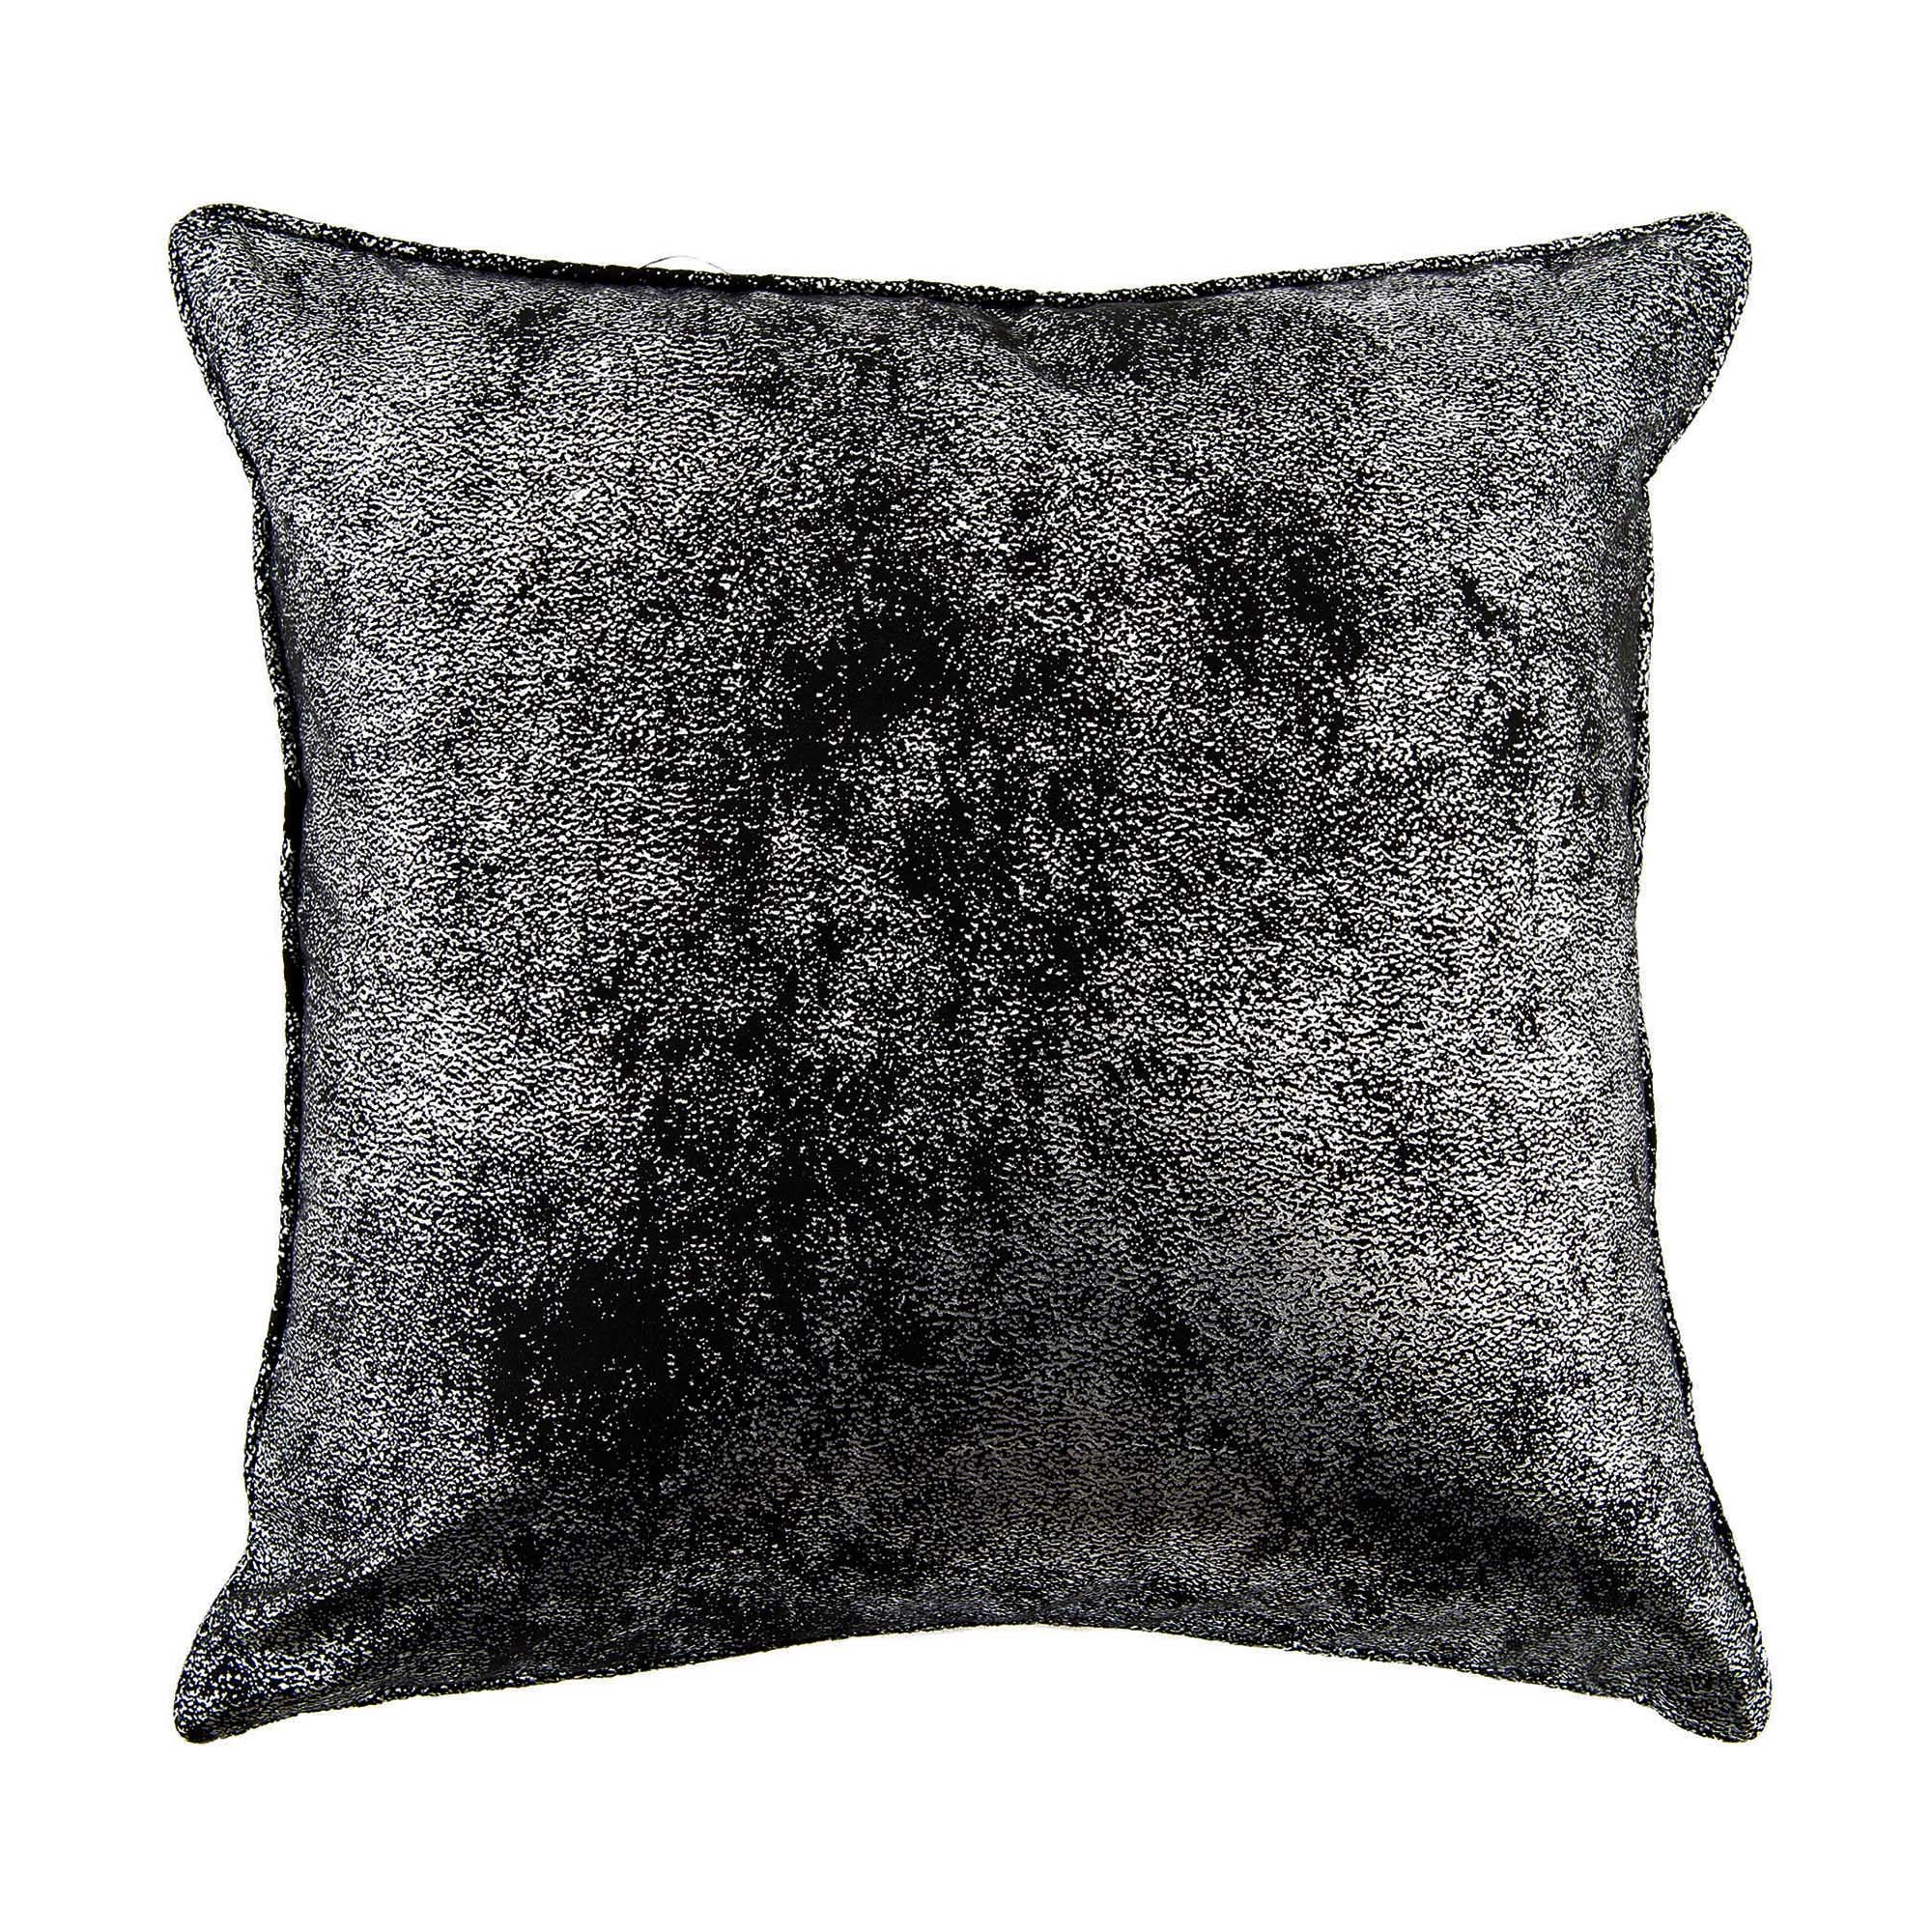 Metallic Print Cushion